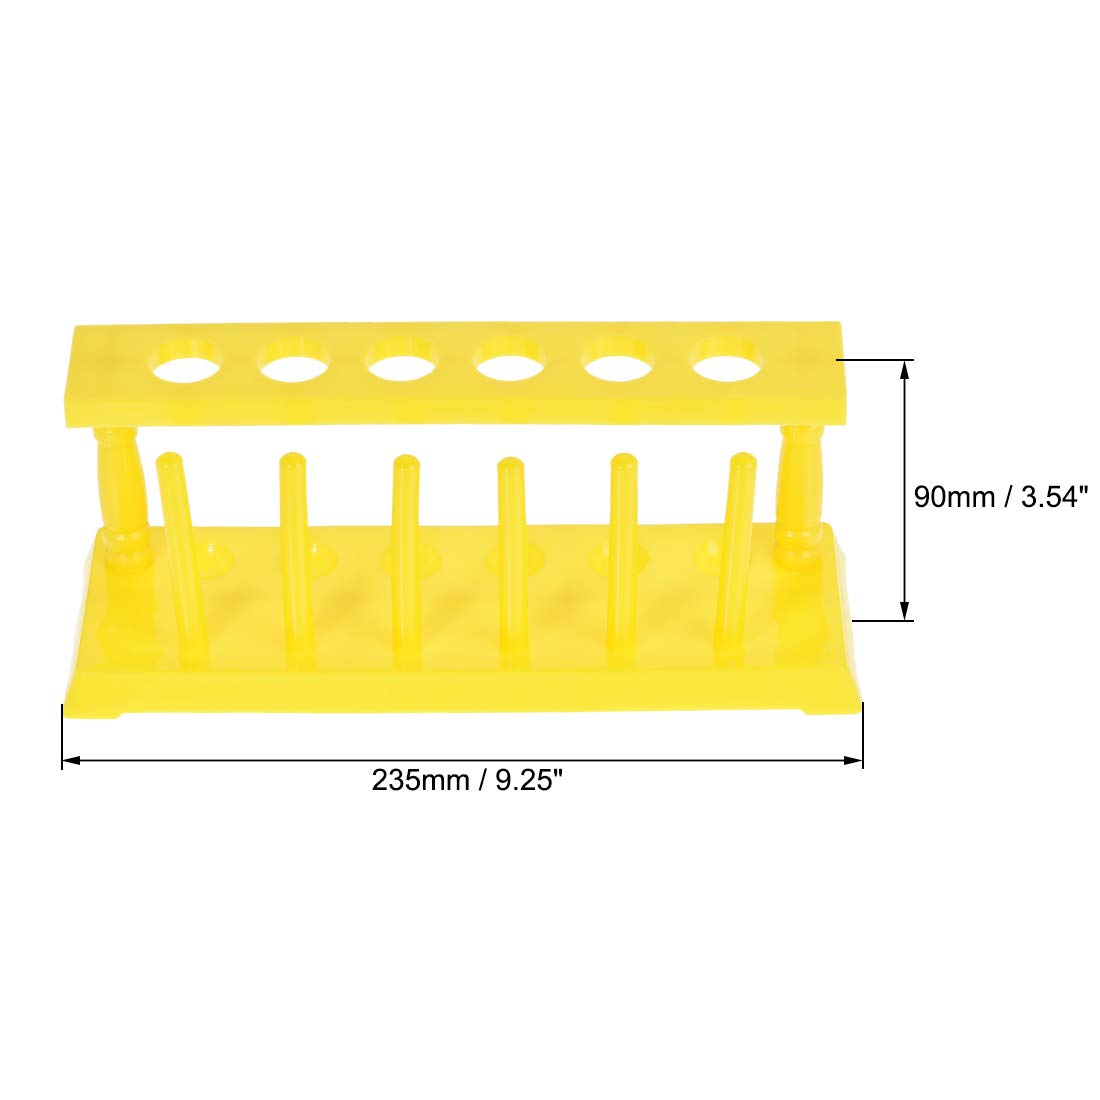 sourcing map Test Tube Holder Rack 6 Wells 6 Pins for 16-20mm Tubes Yellow